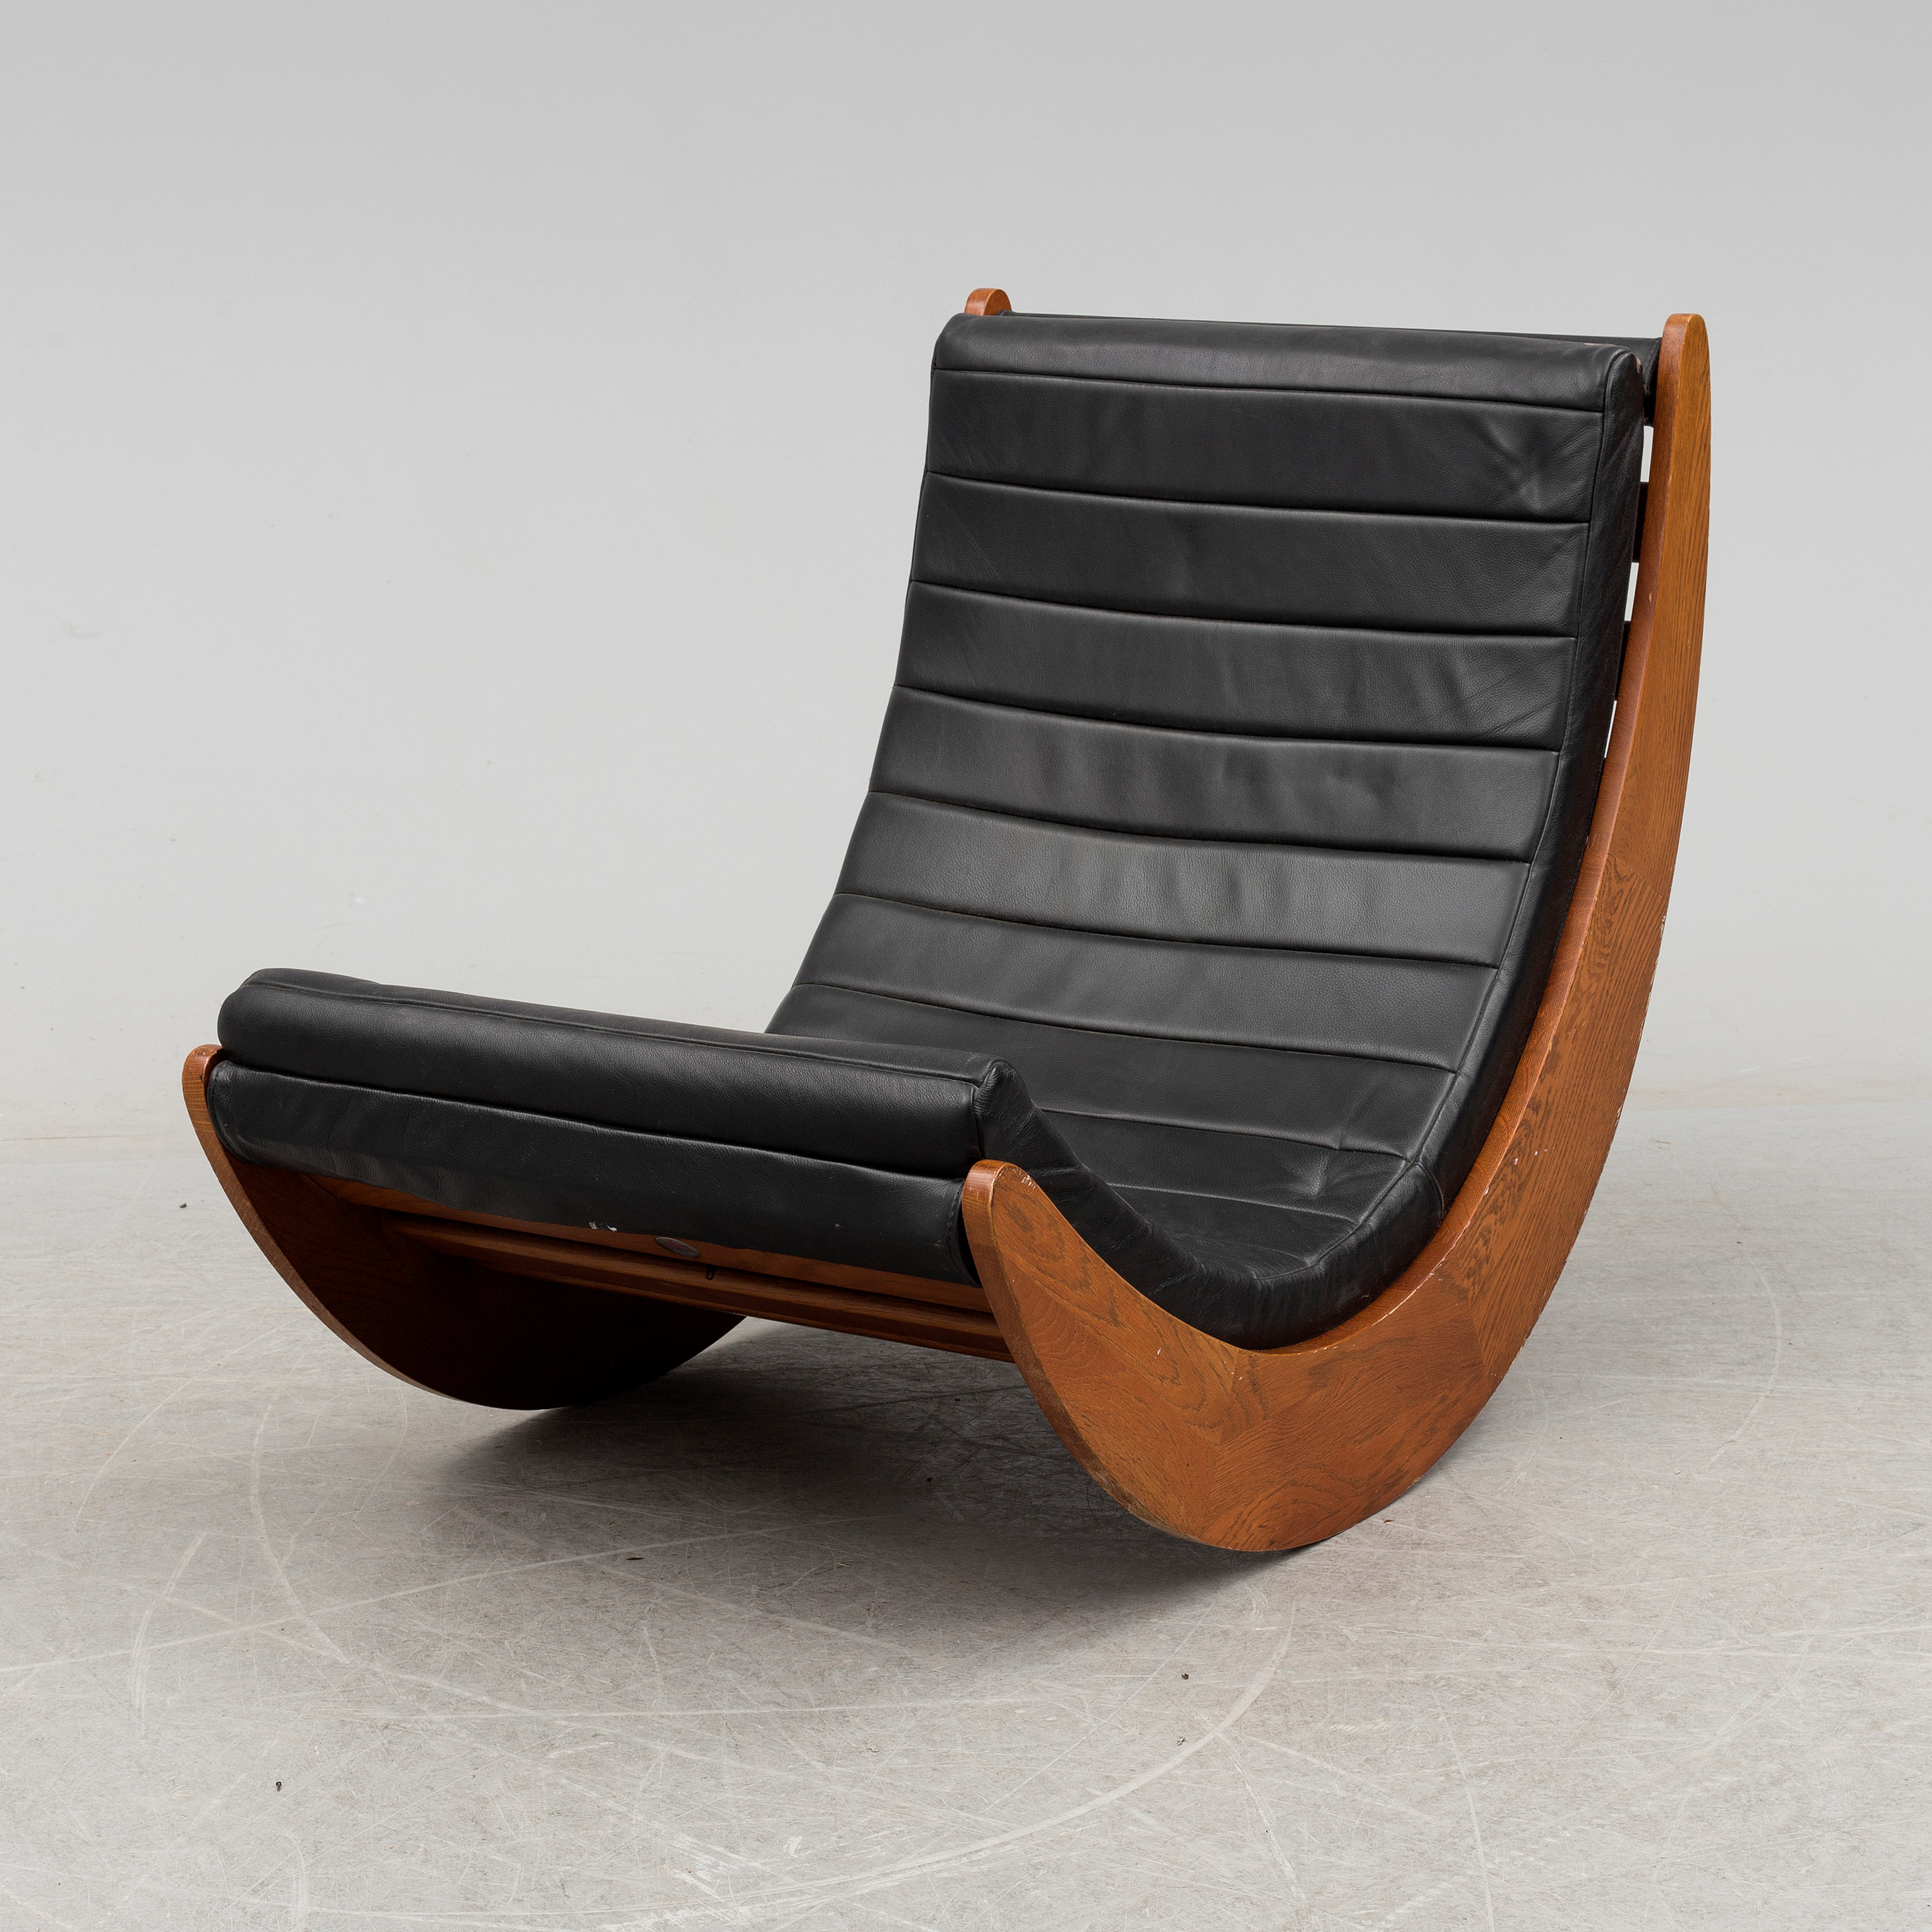 verner panton a relaxer rocking chair by verner panton 2007